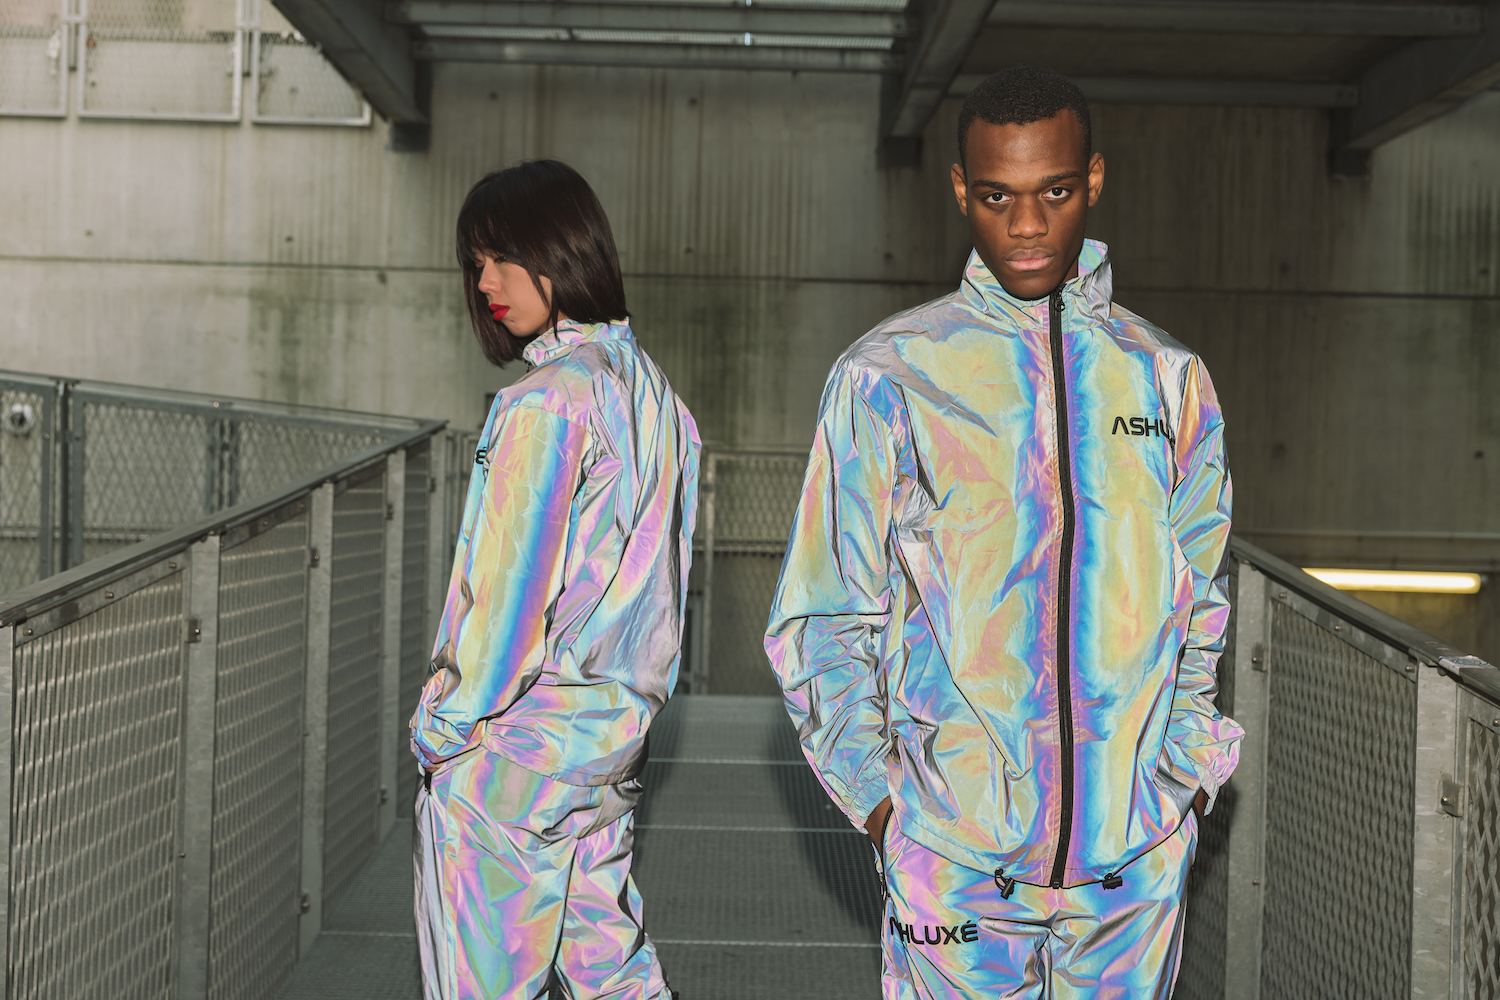 Streetwear Brand ASHLUXE™ Presents Apollo 20 Pre-Collection Space Suit